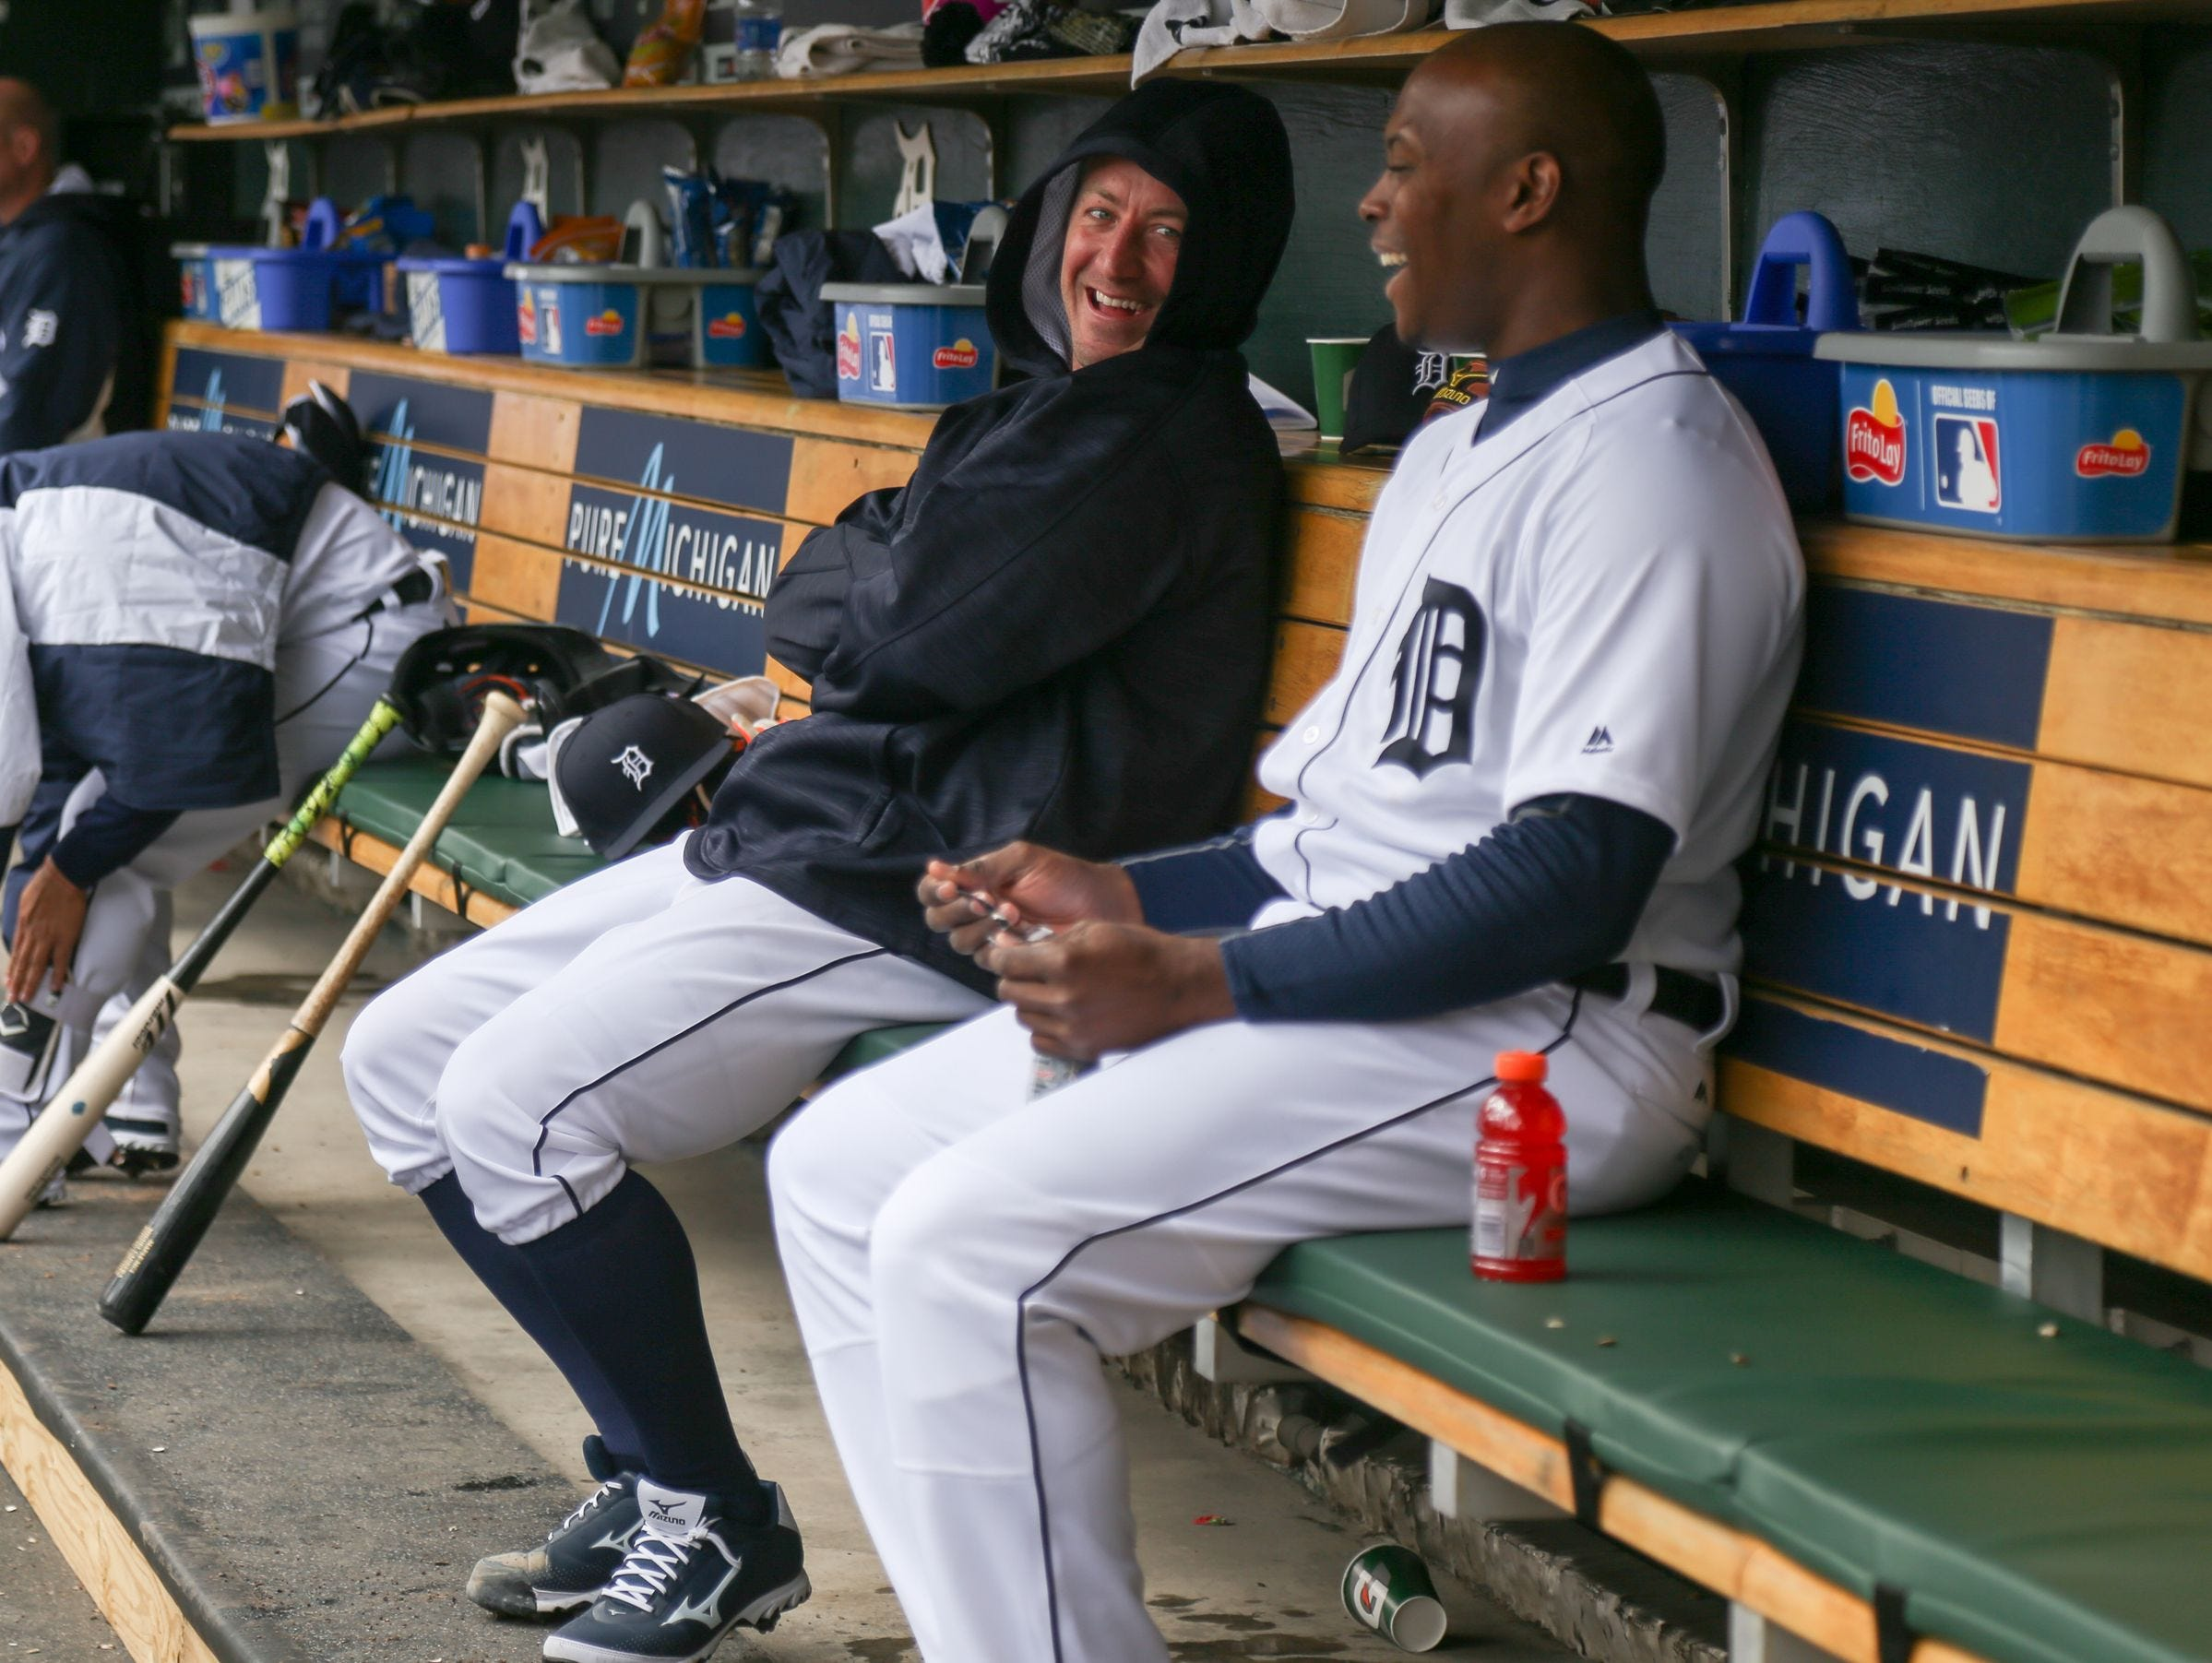 Detroit Tigers' Jordan Zimmermann has a laugh with Justin Upton on the bench during the Opening Day game against the New York Yankees at Comerica Park in Detroit on Friday, April 8, 2016.